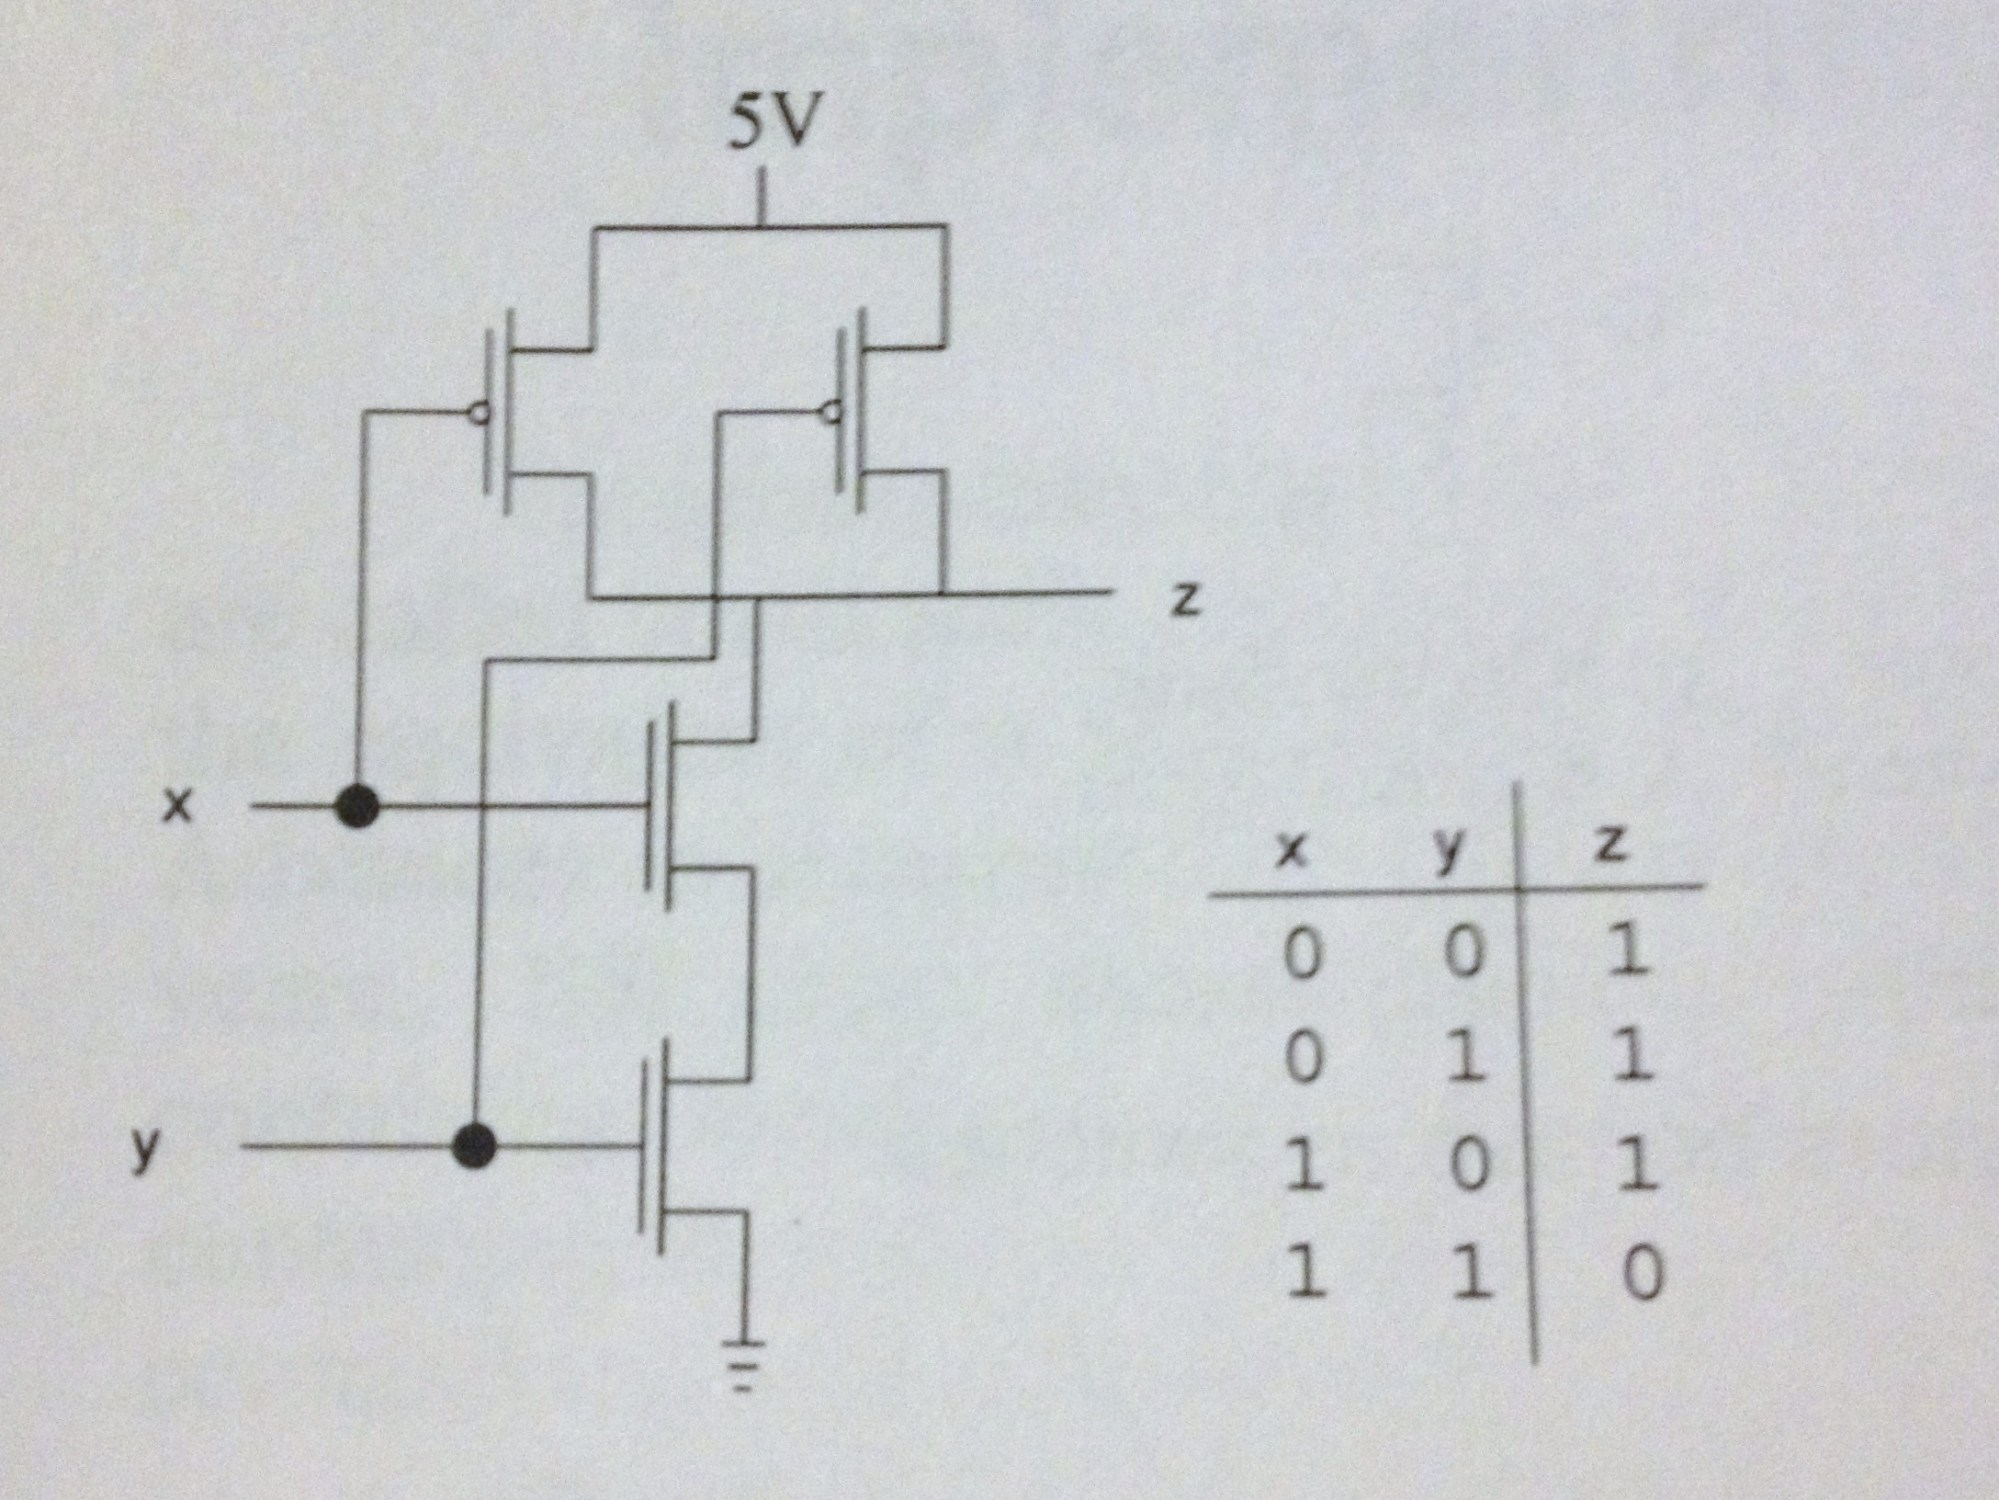 hight resolution of circuit diagram for a nand gate